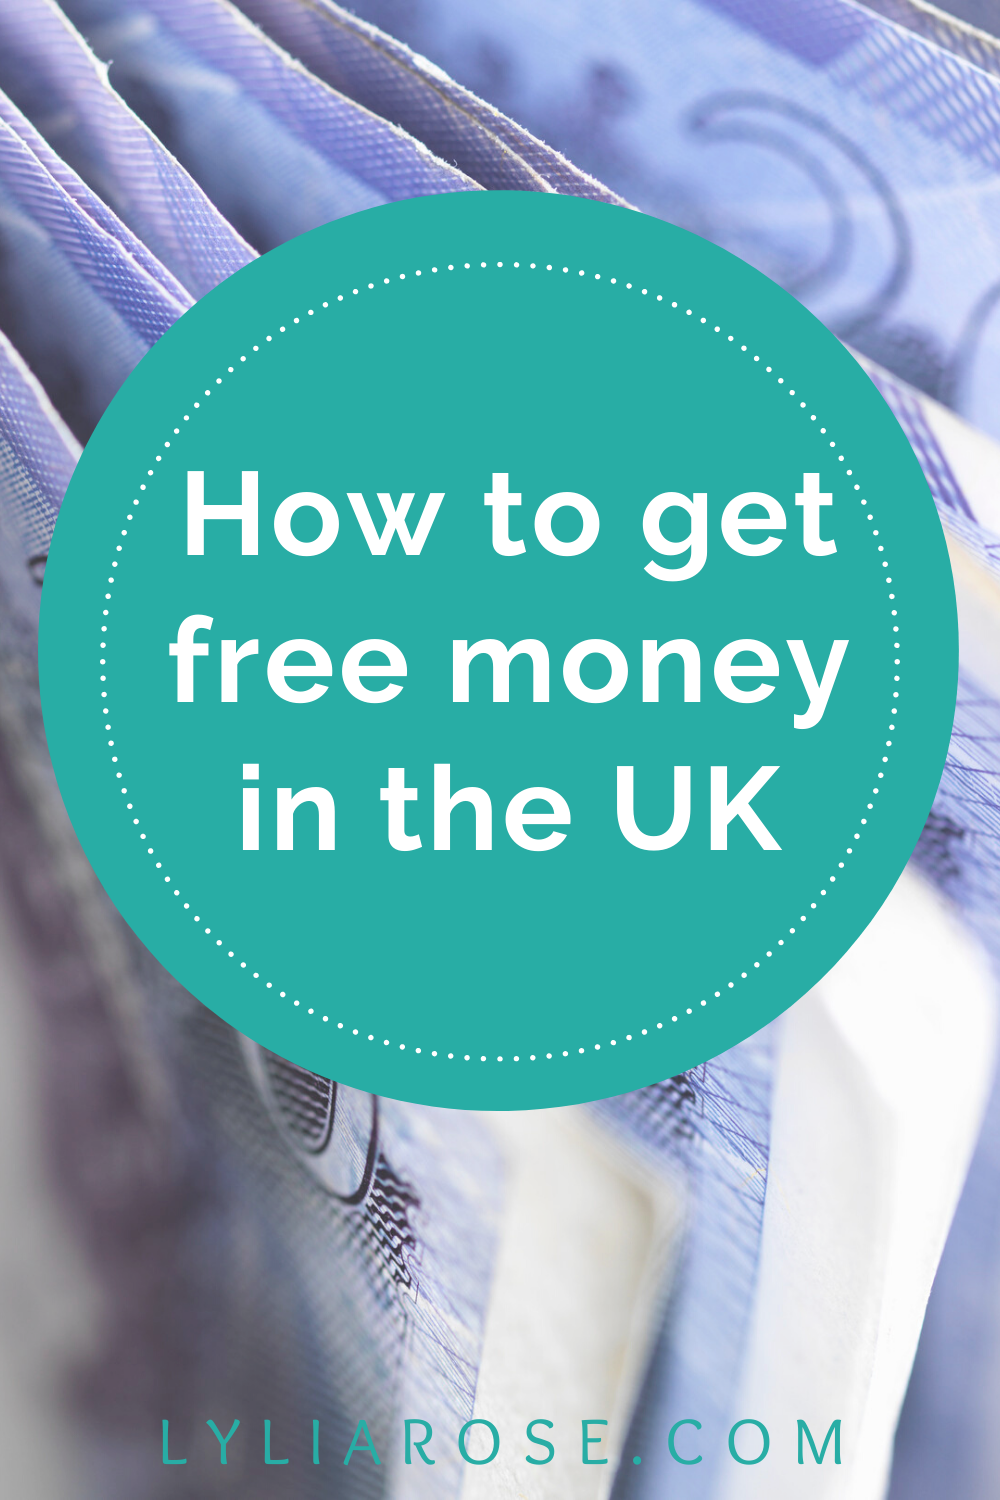 How to get free money UK (4)